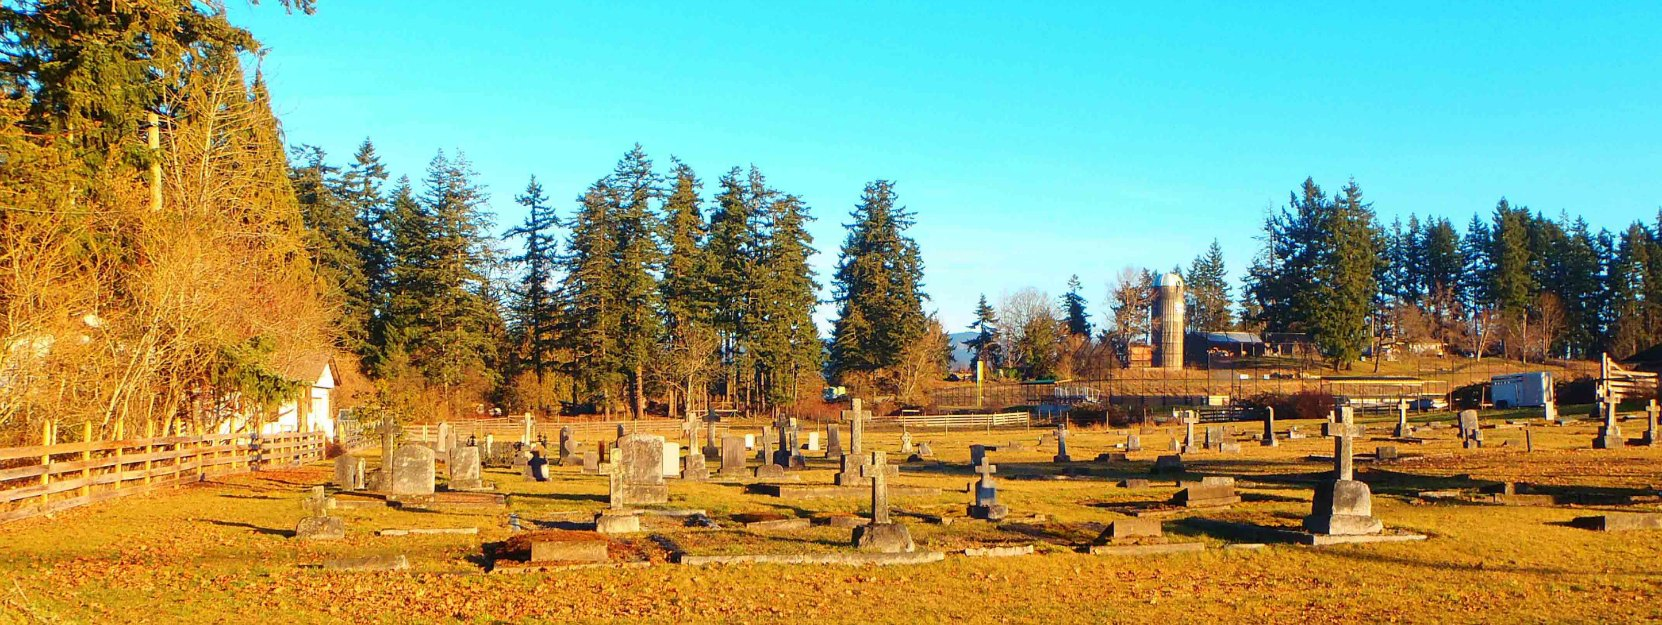 St. Mary's Somenos Anglican Cemetery, Somenos Road, North Cowichan